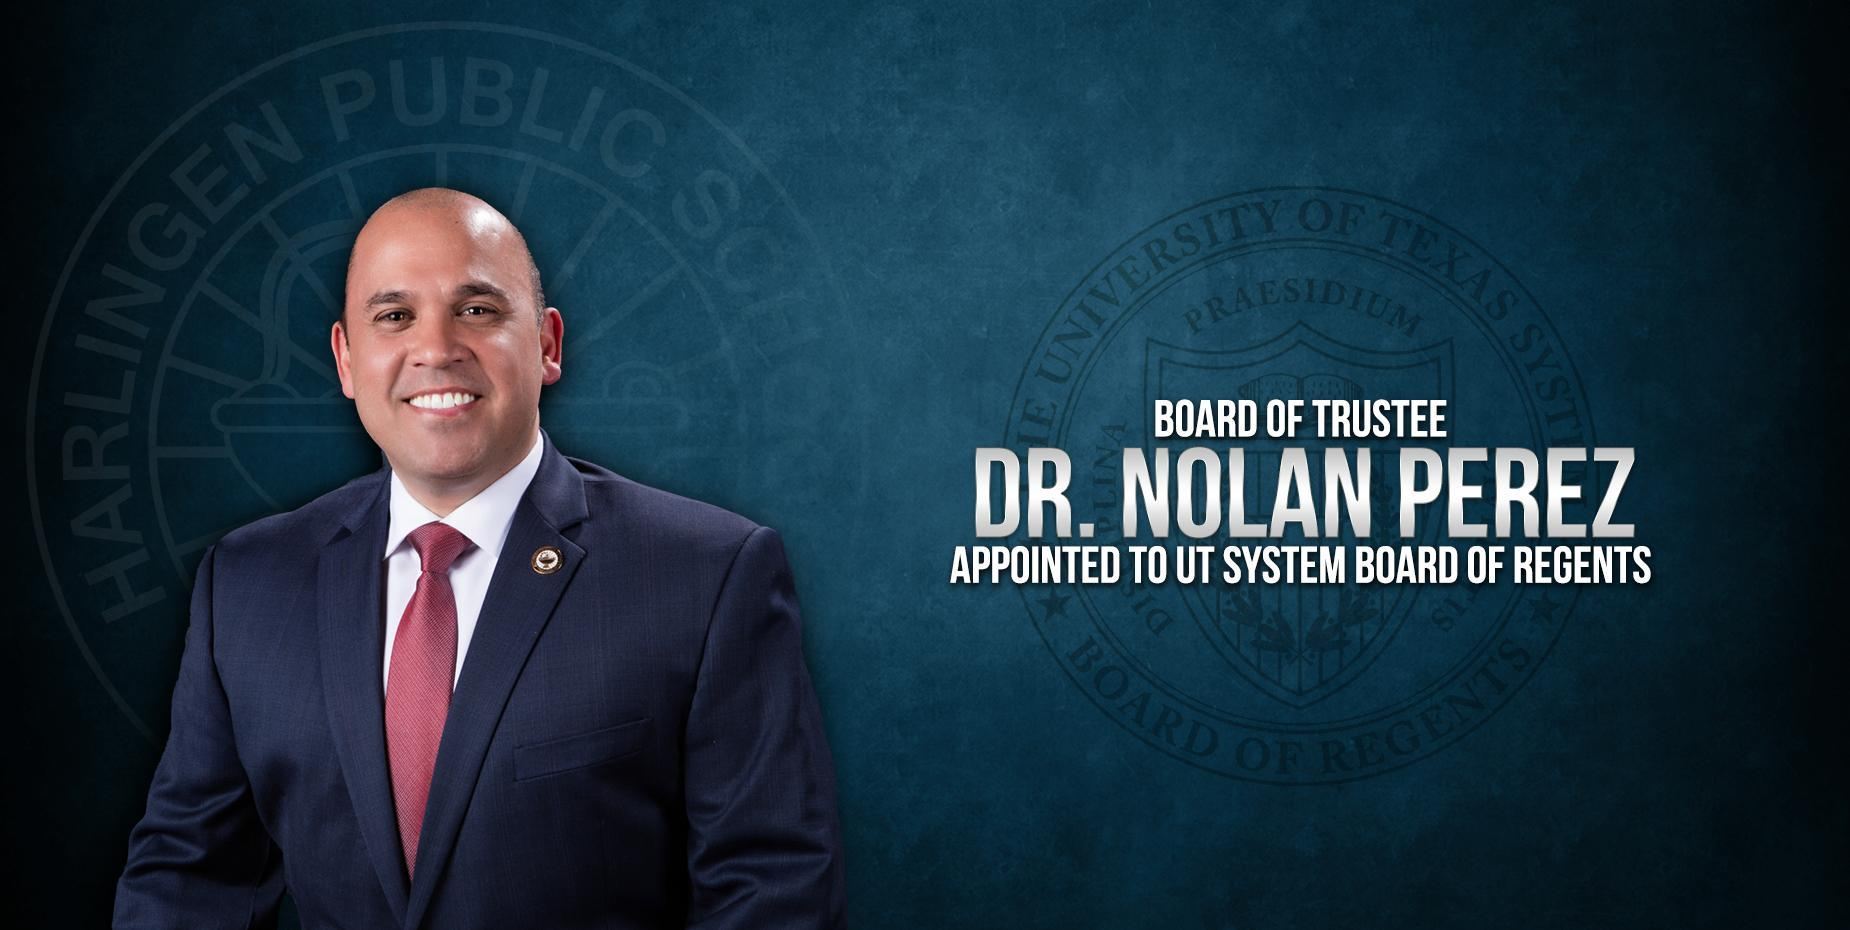 Board of Trustee Dr. Nolan Perez Appointed